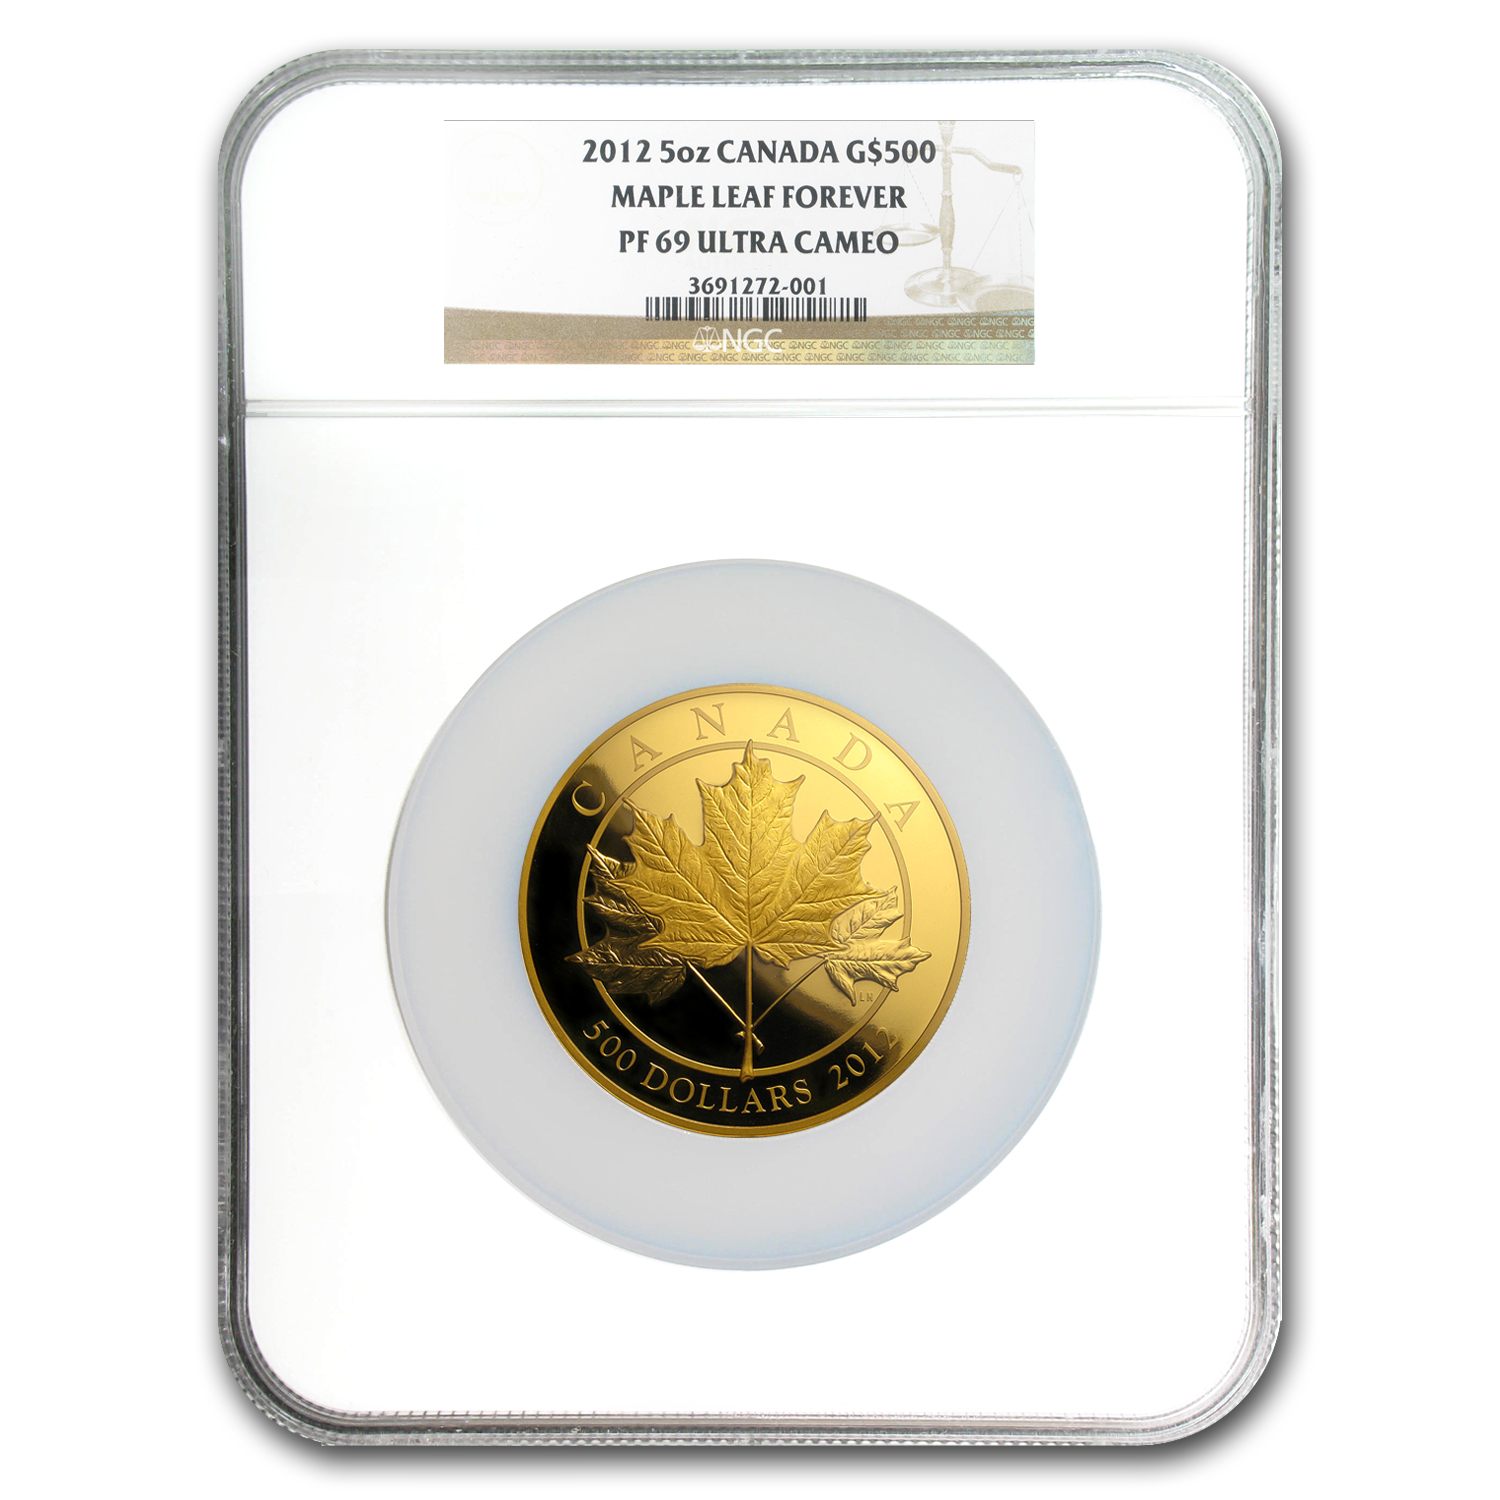 2012 Canada 5 oz Proof Gold $500 Maple Leaf Forever PF-69 NGC